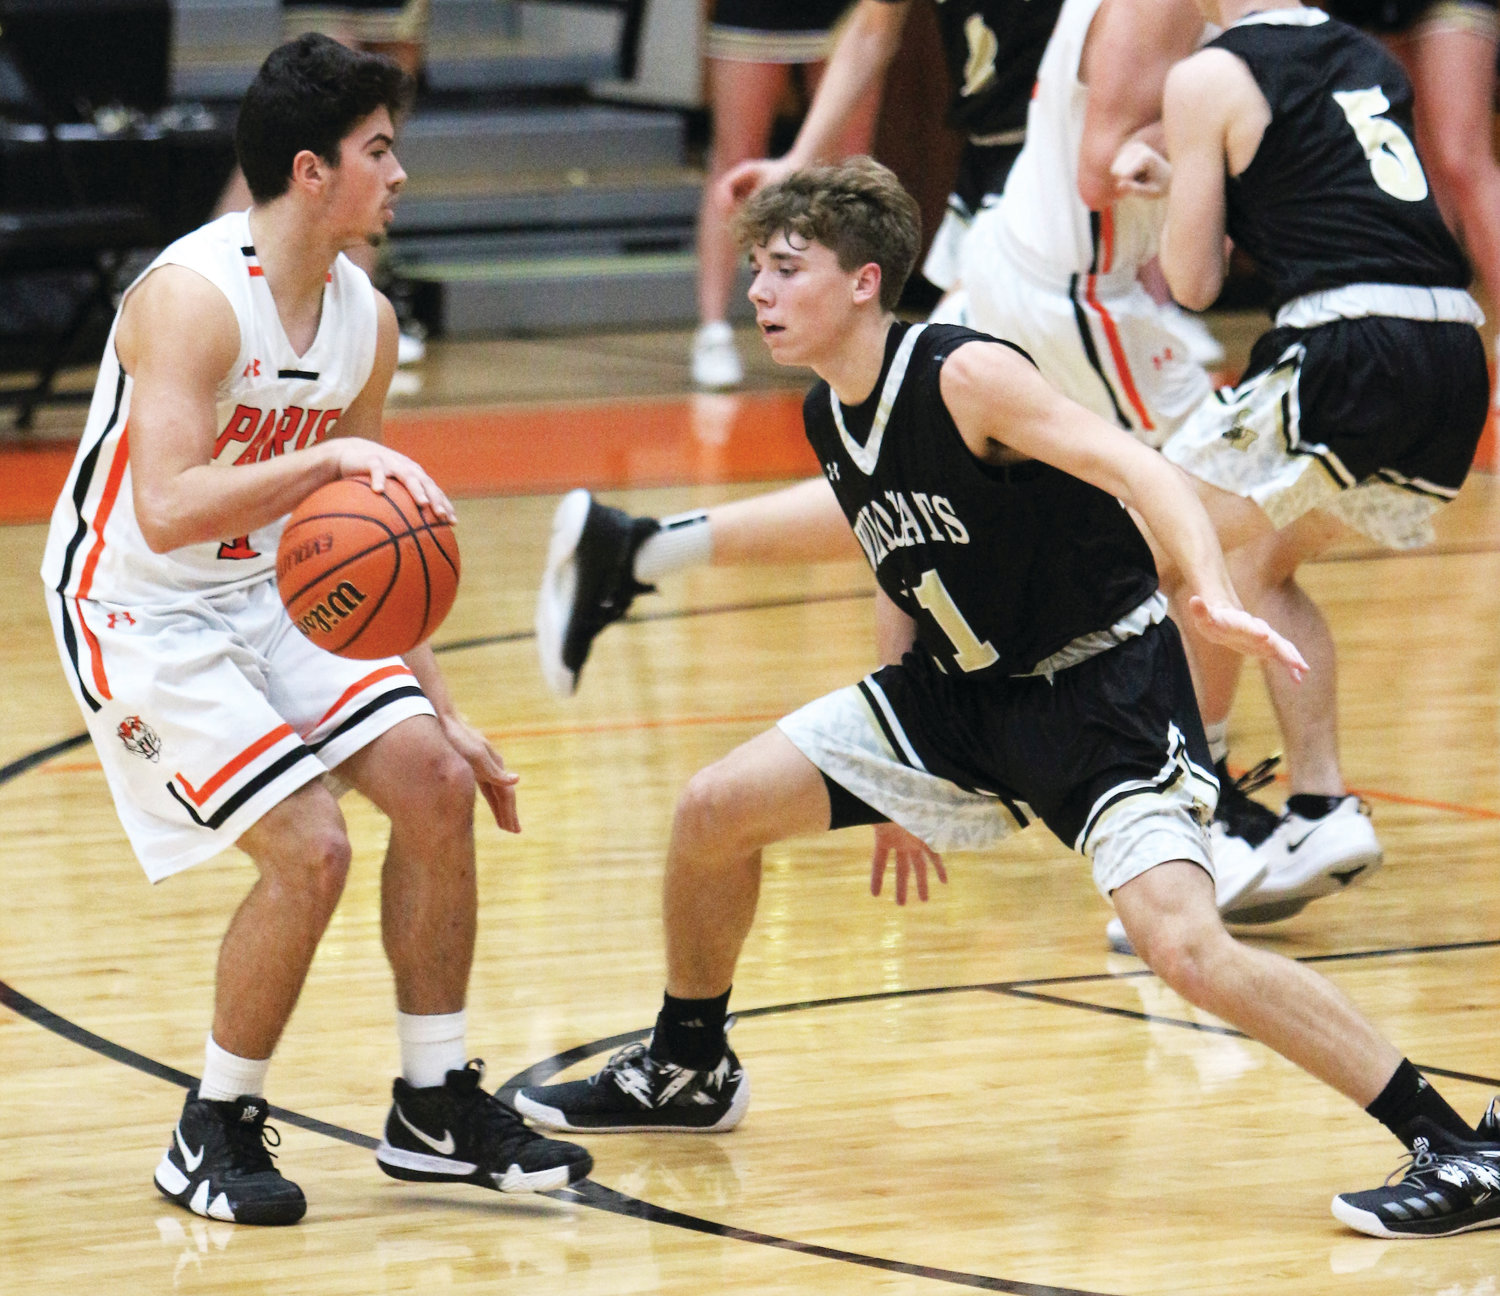 Mason Hutchings, left, works the ball away from a South Vermillion player during the Jan. 7 game at Paris High School.